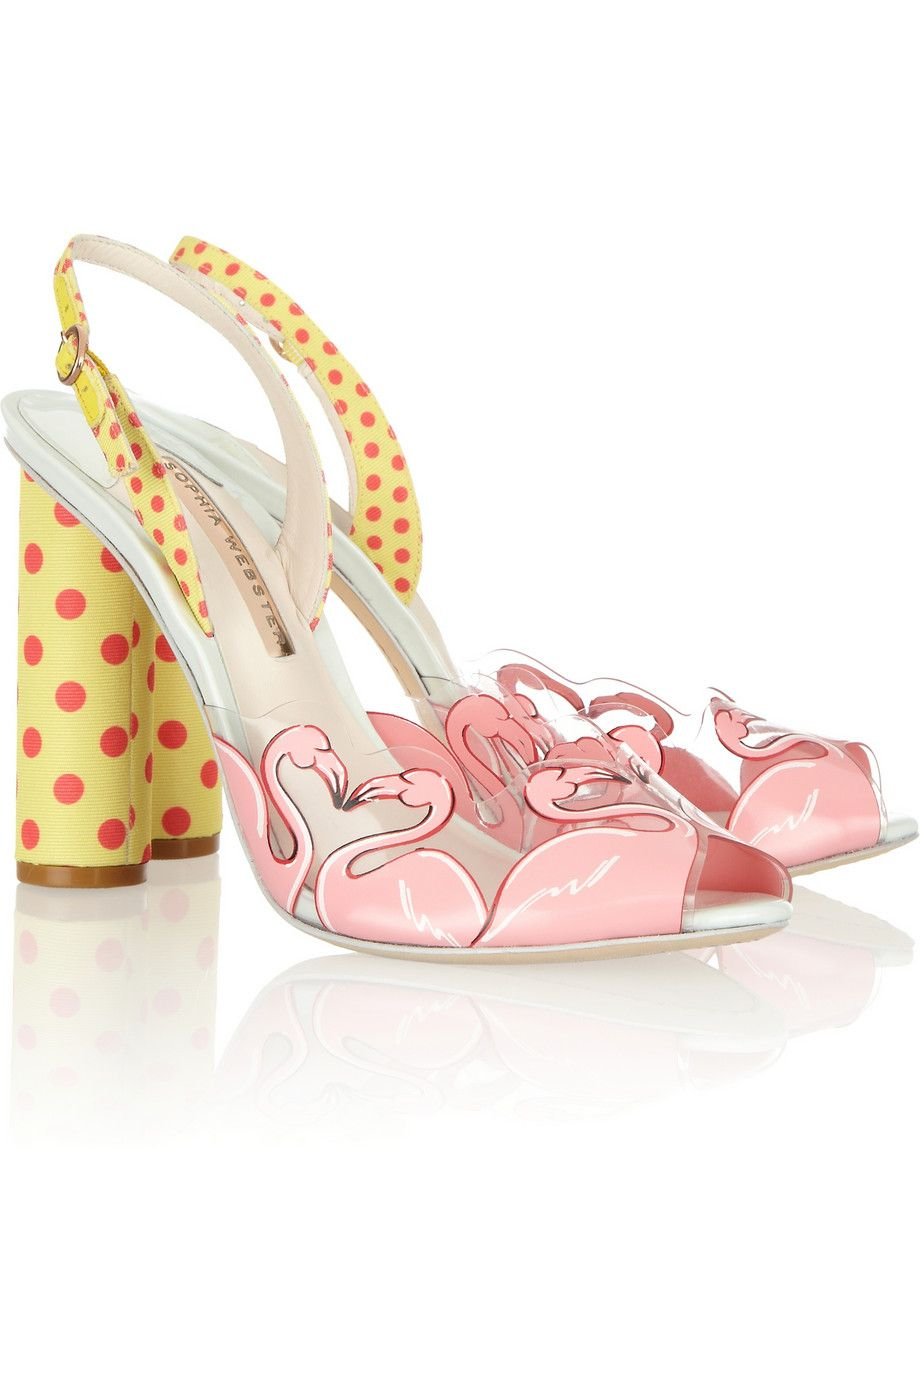 Chaussures - Sandales Flamants Roses MYsKctMHio